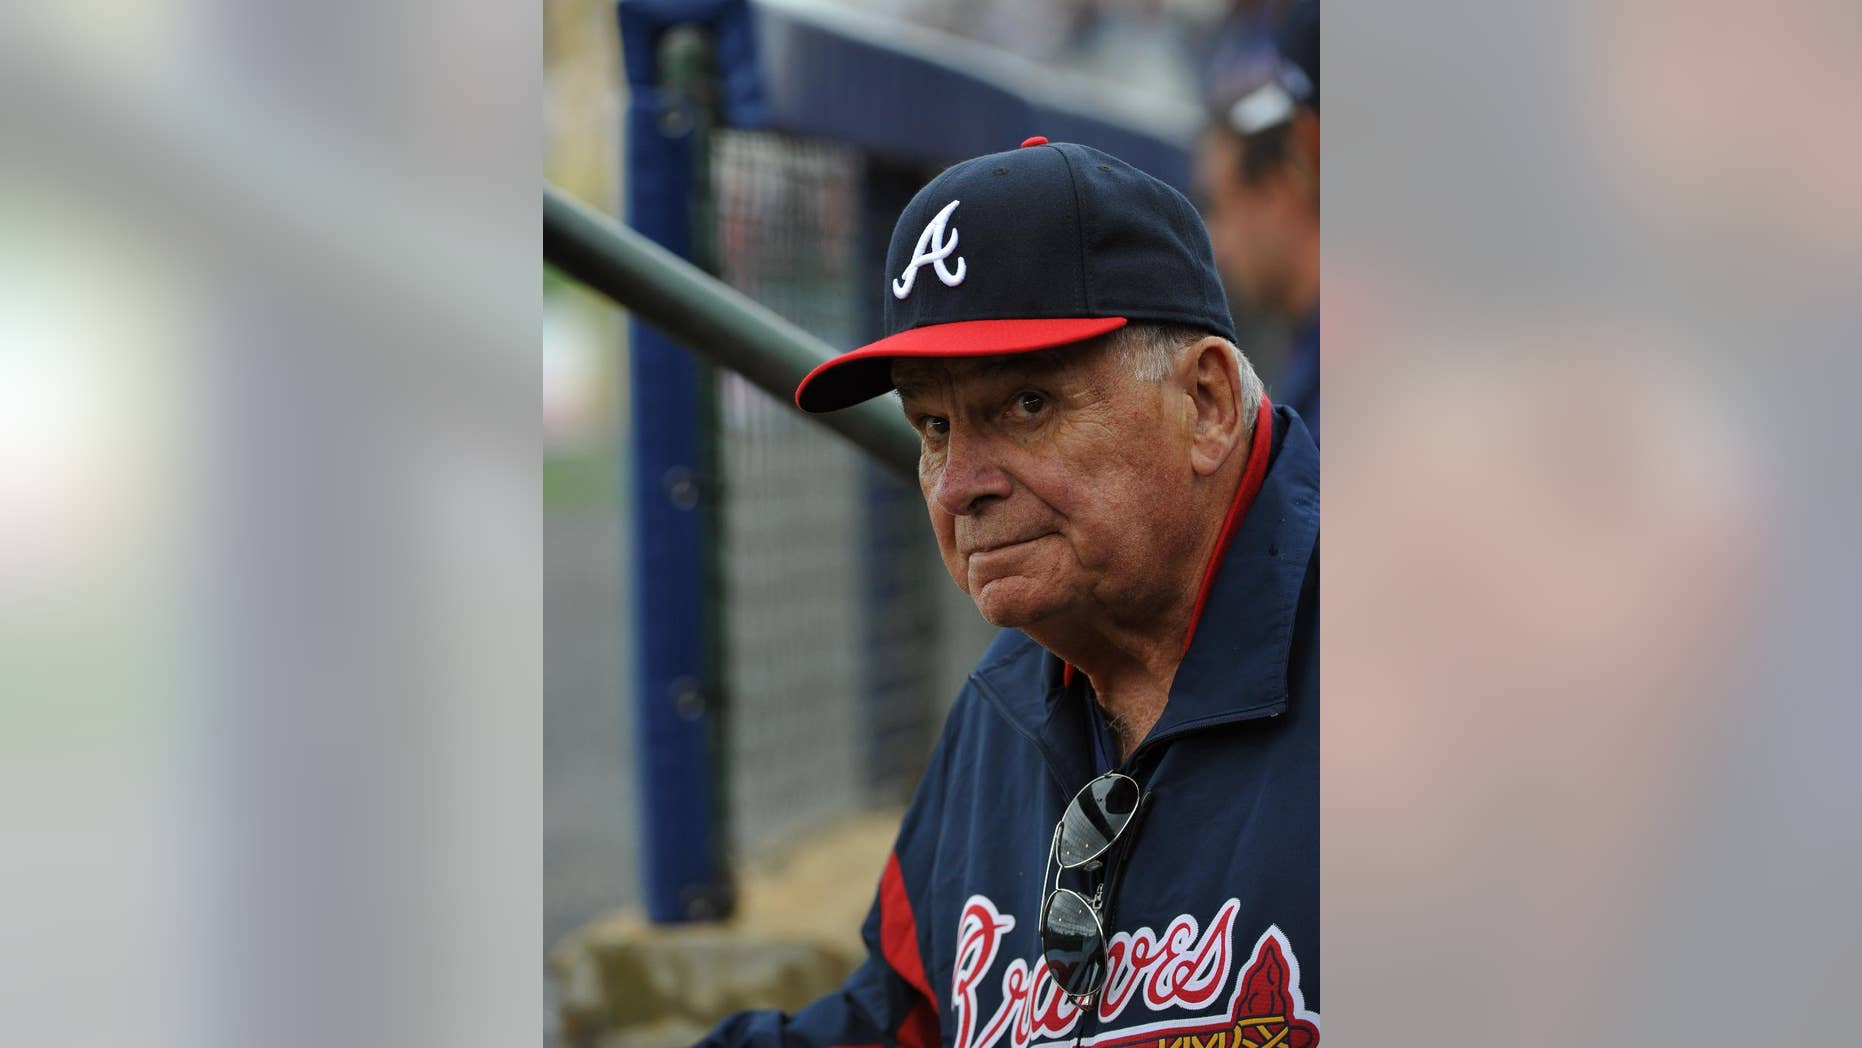 Former Atlanta Braves manager Bobby Cox watches from the dugout as he manages the minor league Future Stars against the Atlanta Braves in an exhibition baseball game Saturday, March 29, 2014, in Rome, Ga. (Associated Press)